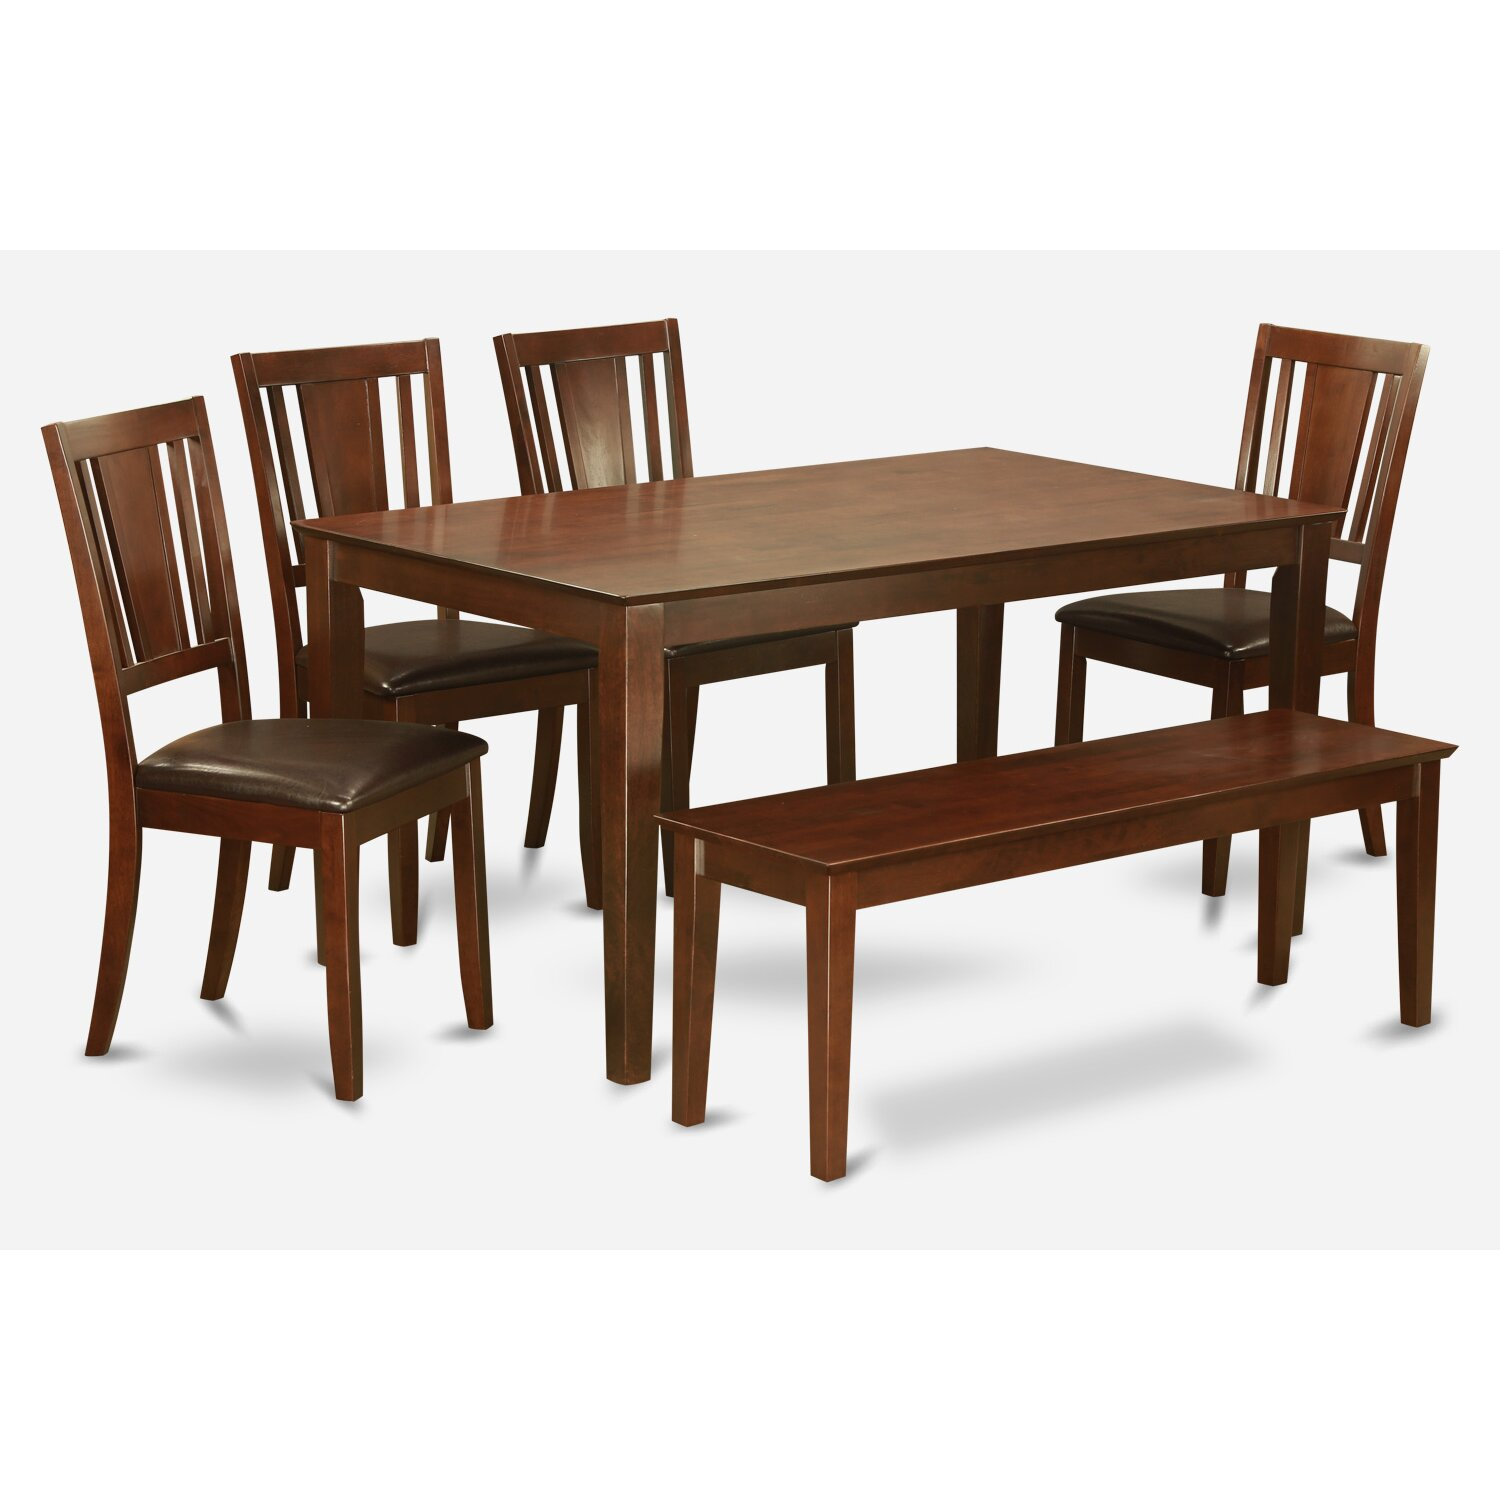 Kitchen Table And 6 Chairs: Capri 6 Piece Dining Set